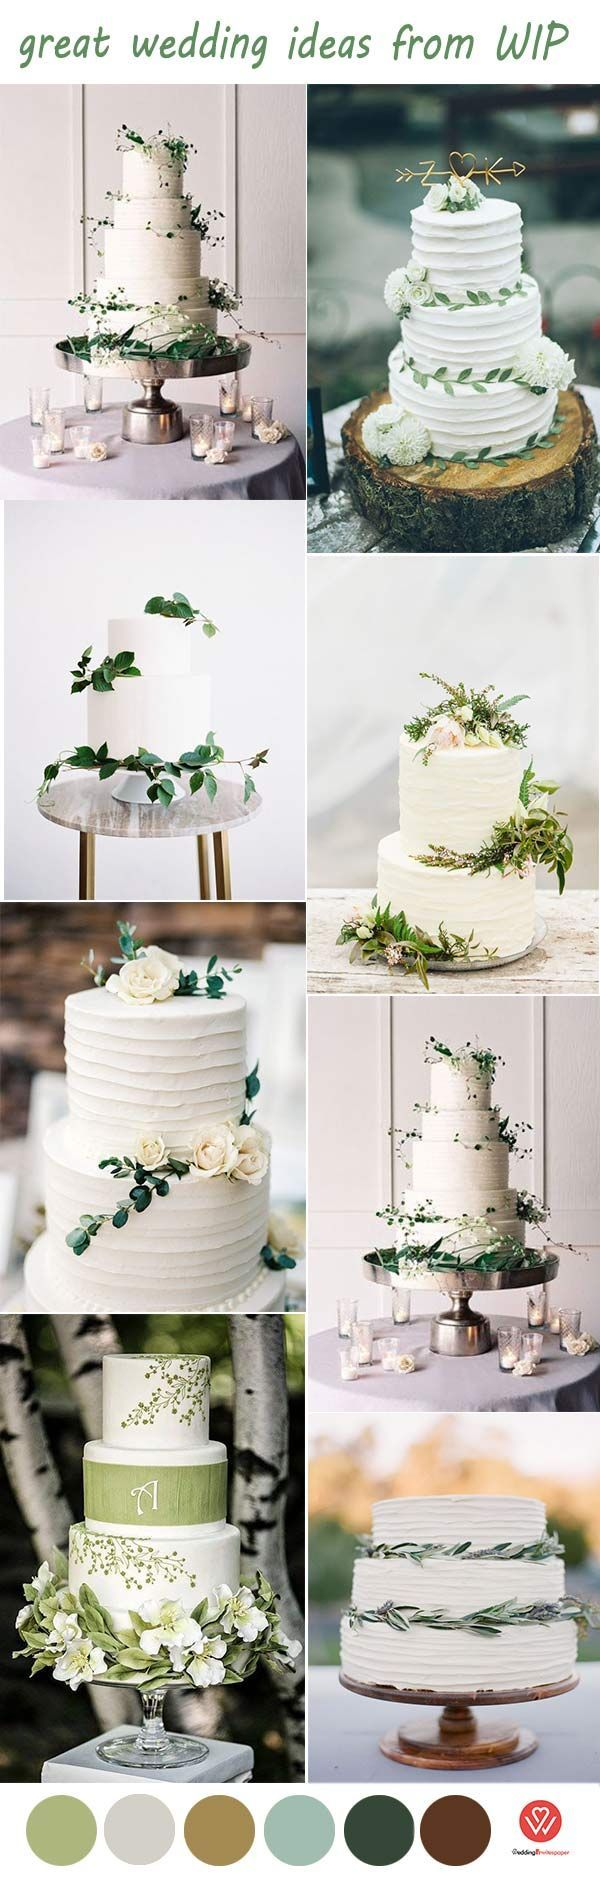 shabby chic bridal shower cakes%0A    StealWorthy Wedding Cake Ideas For Your Special Day  Wedding Invites  Paper rustic